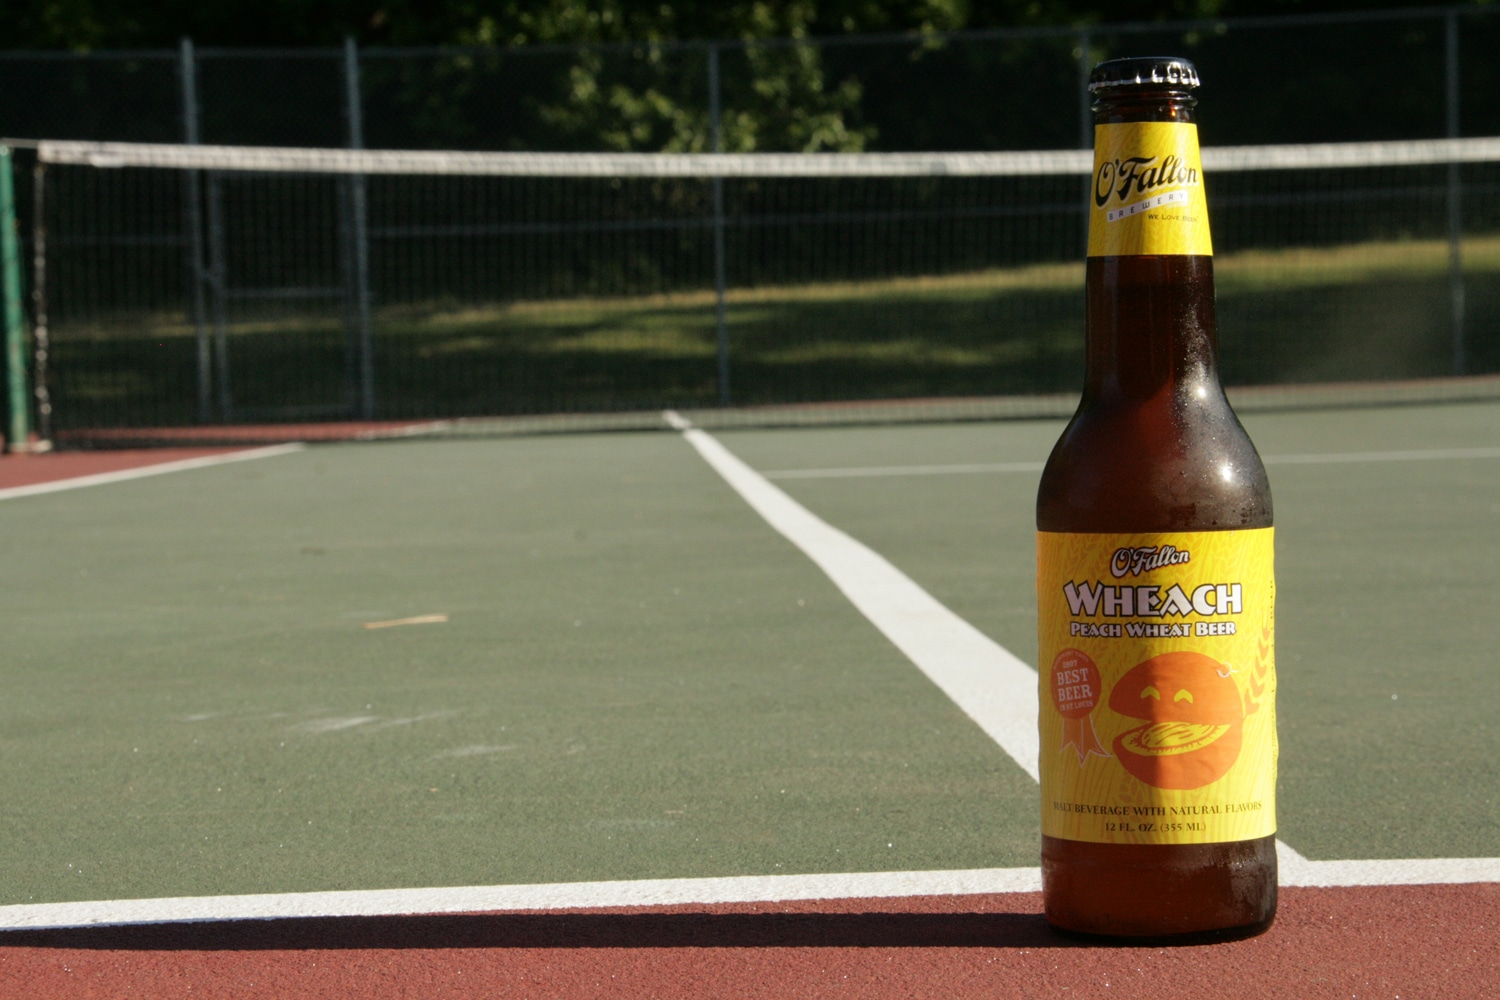 Weach peach summer beer is a fruit beer with flavor.